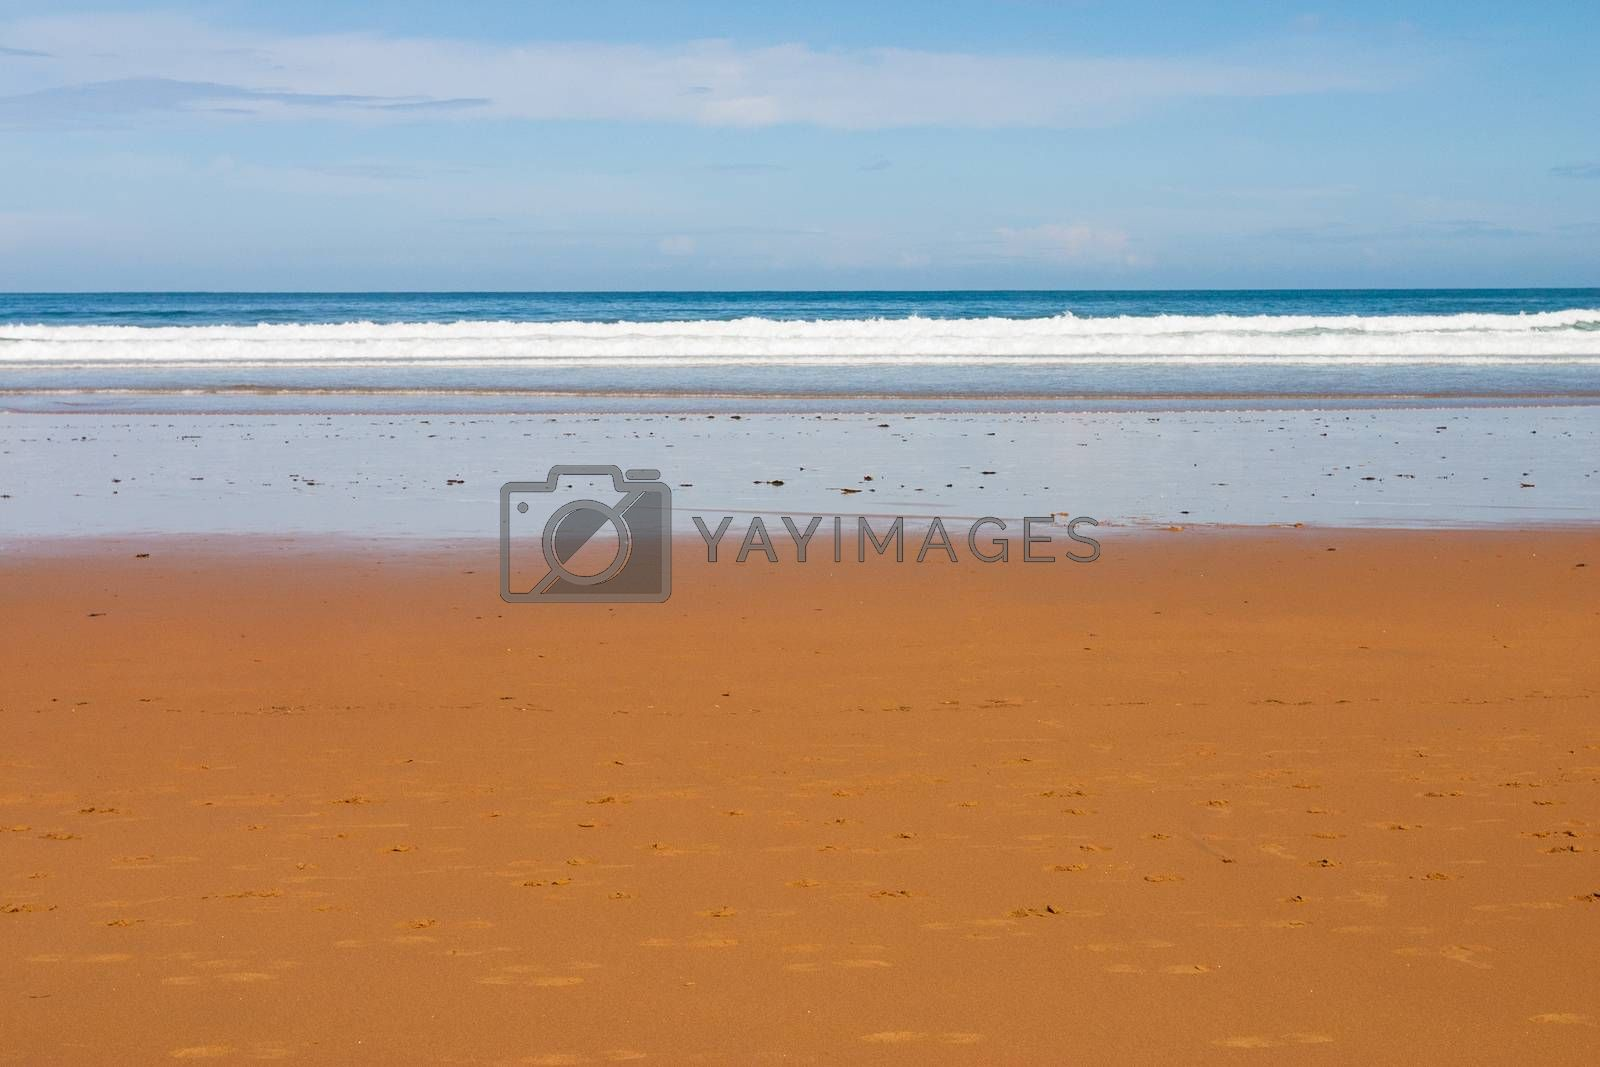 La Griega beach pic in Colunga, small town of the province of Asturias Spain